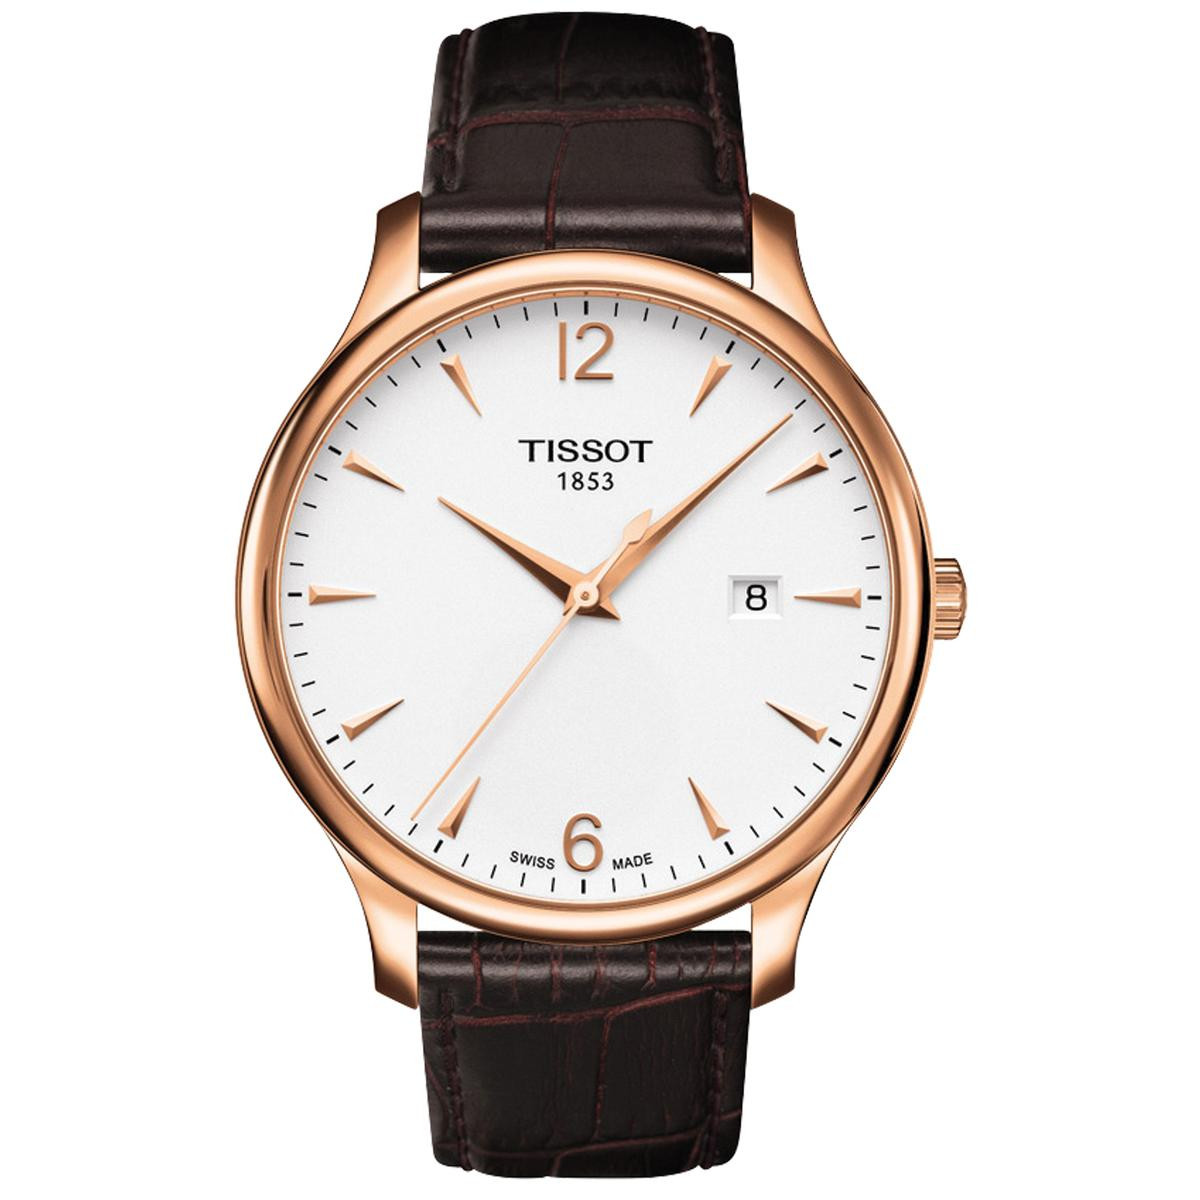 Tissot Tradition with Alligator Strap